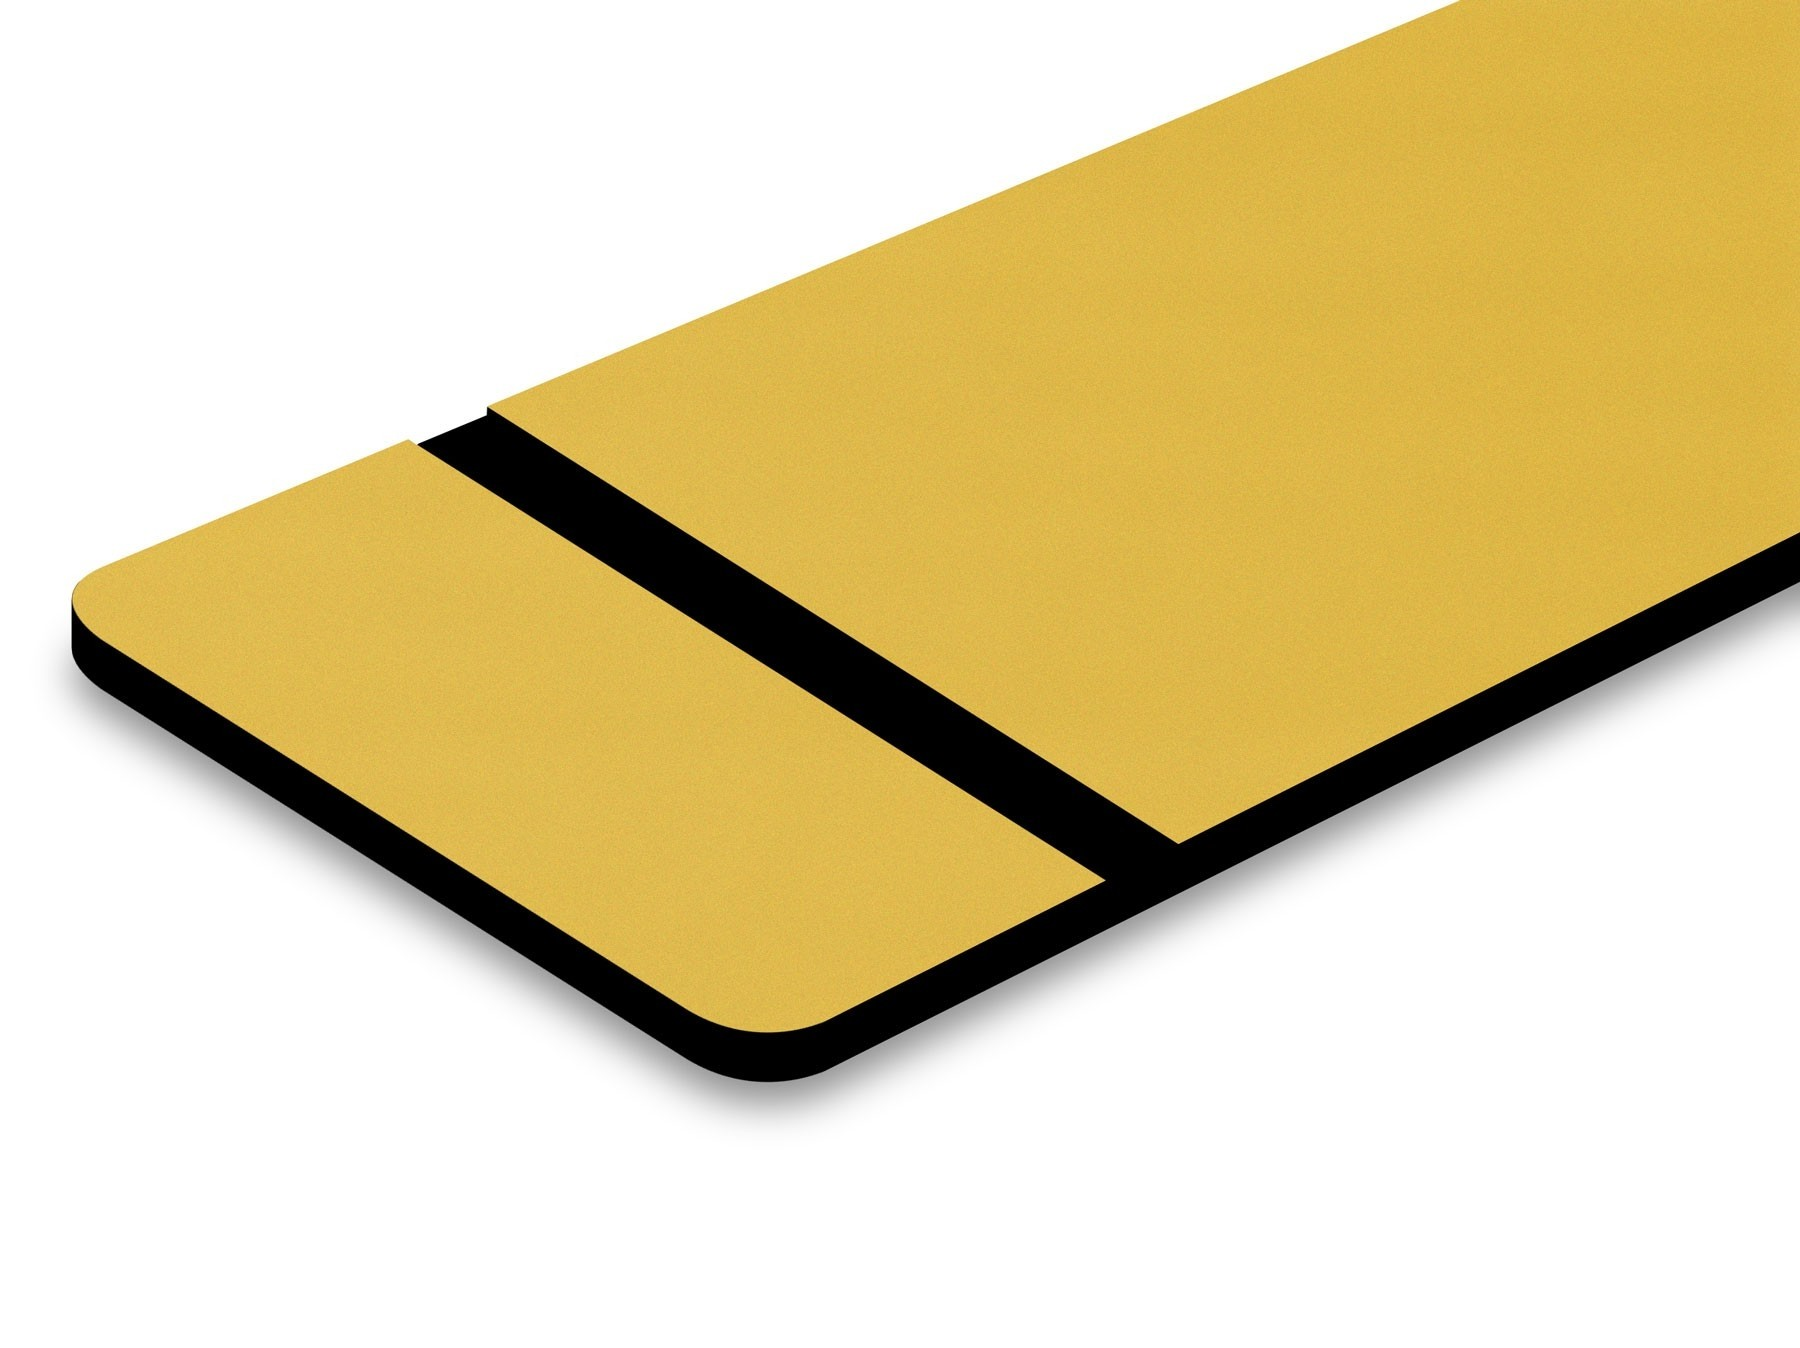 TroLase Metallic Plus, Brushed Gold/Black, 2ply, 1.6 mm